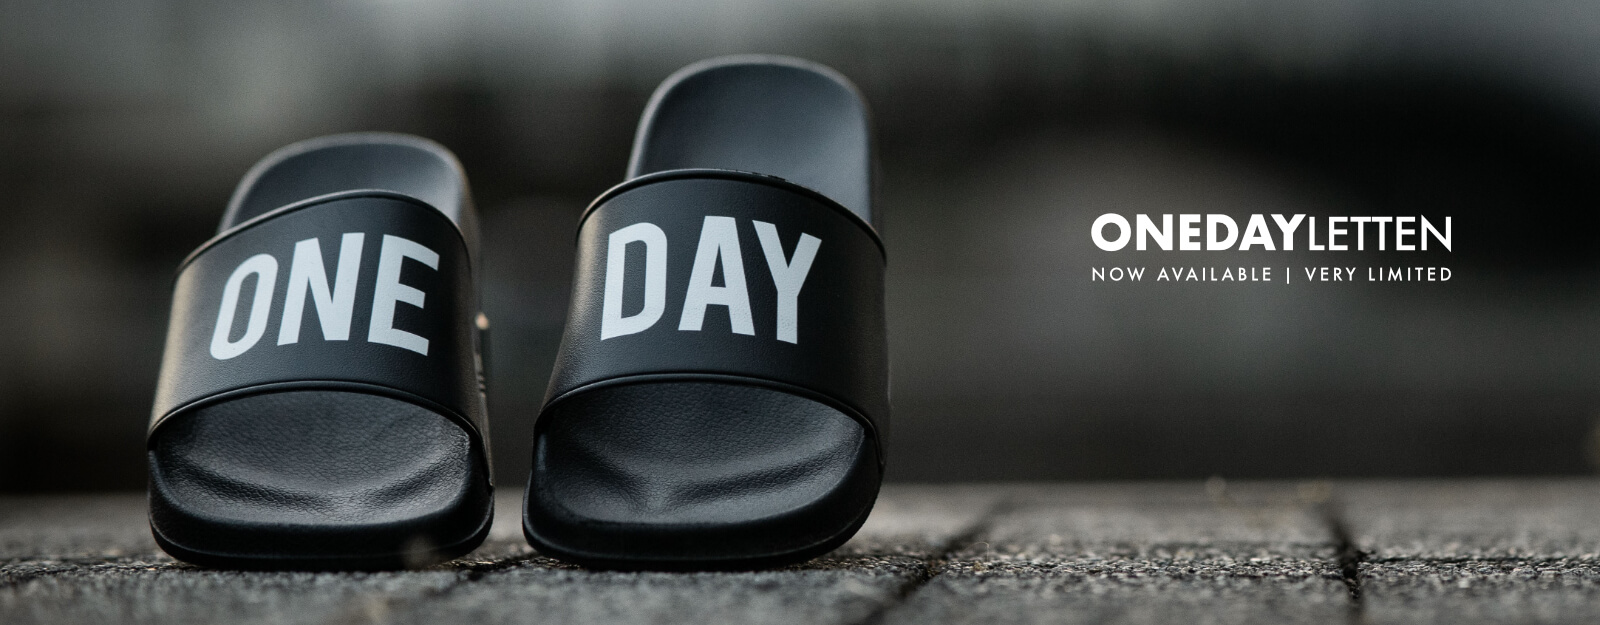 ONE DAY Letten MIND OVER MATTER - Banner